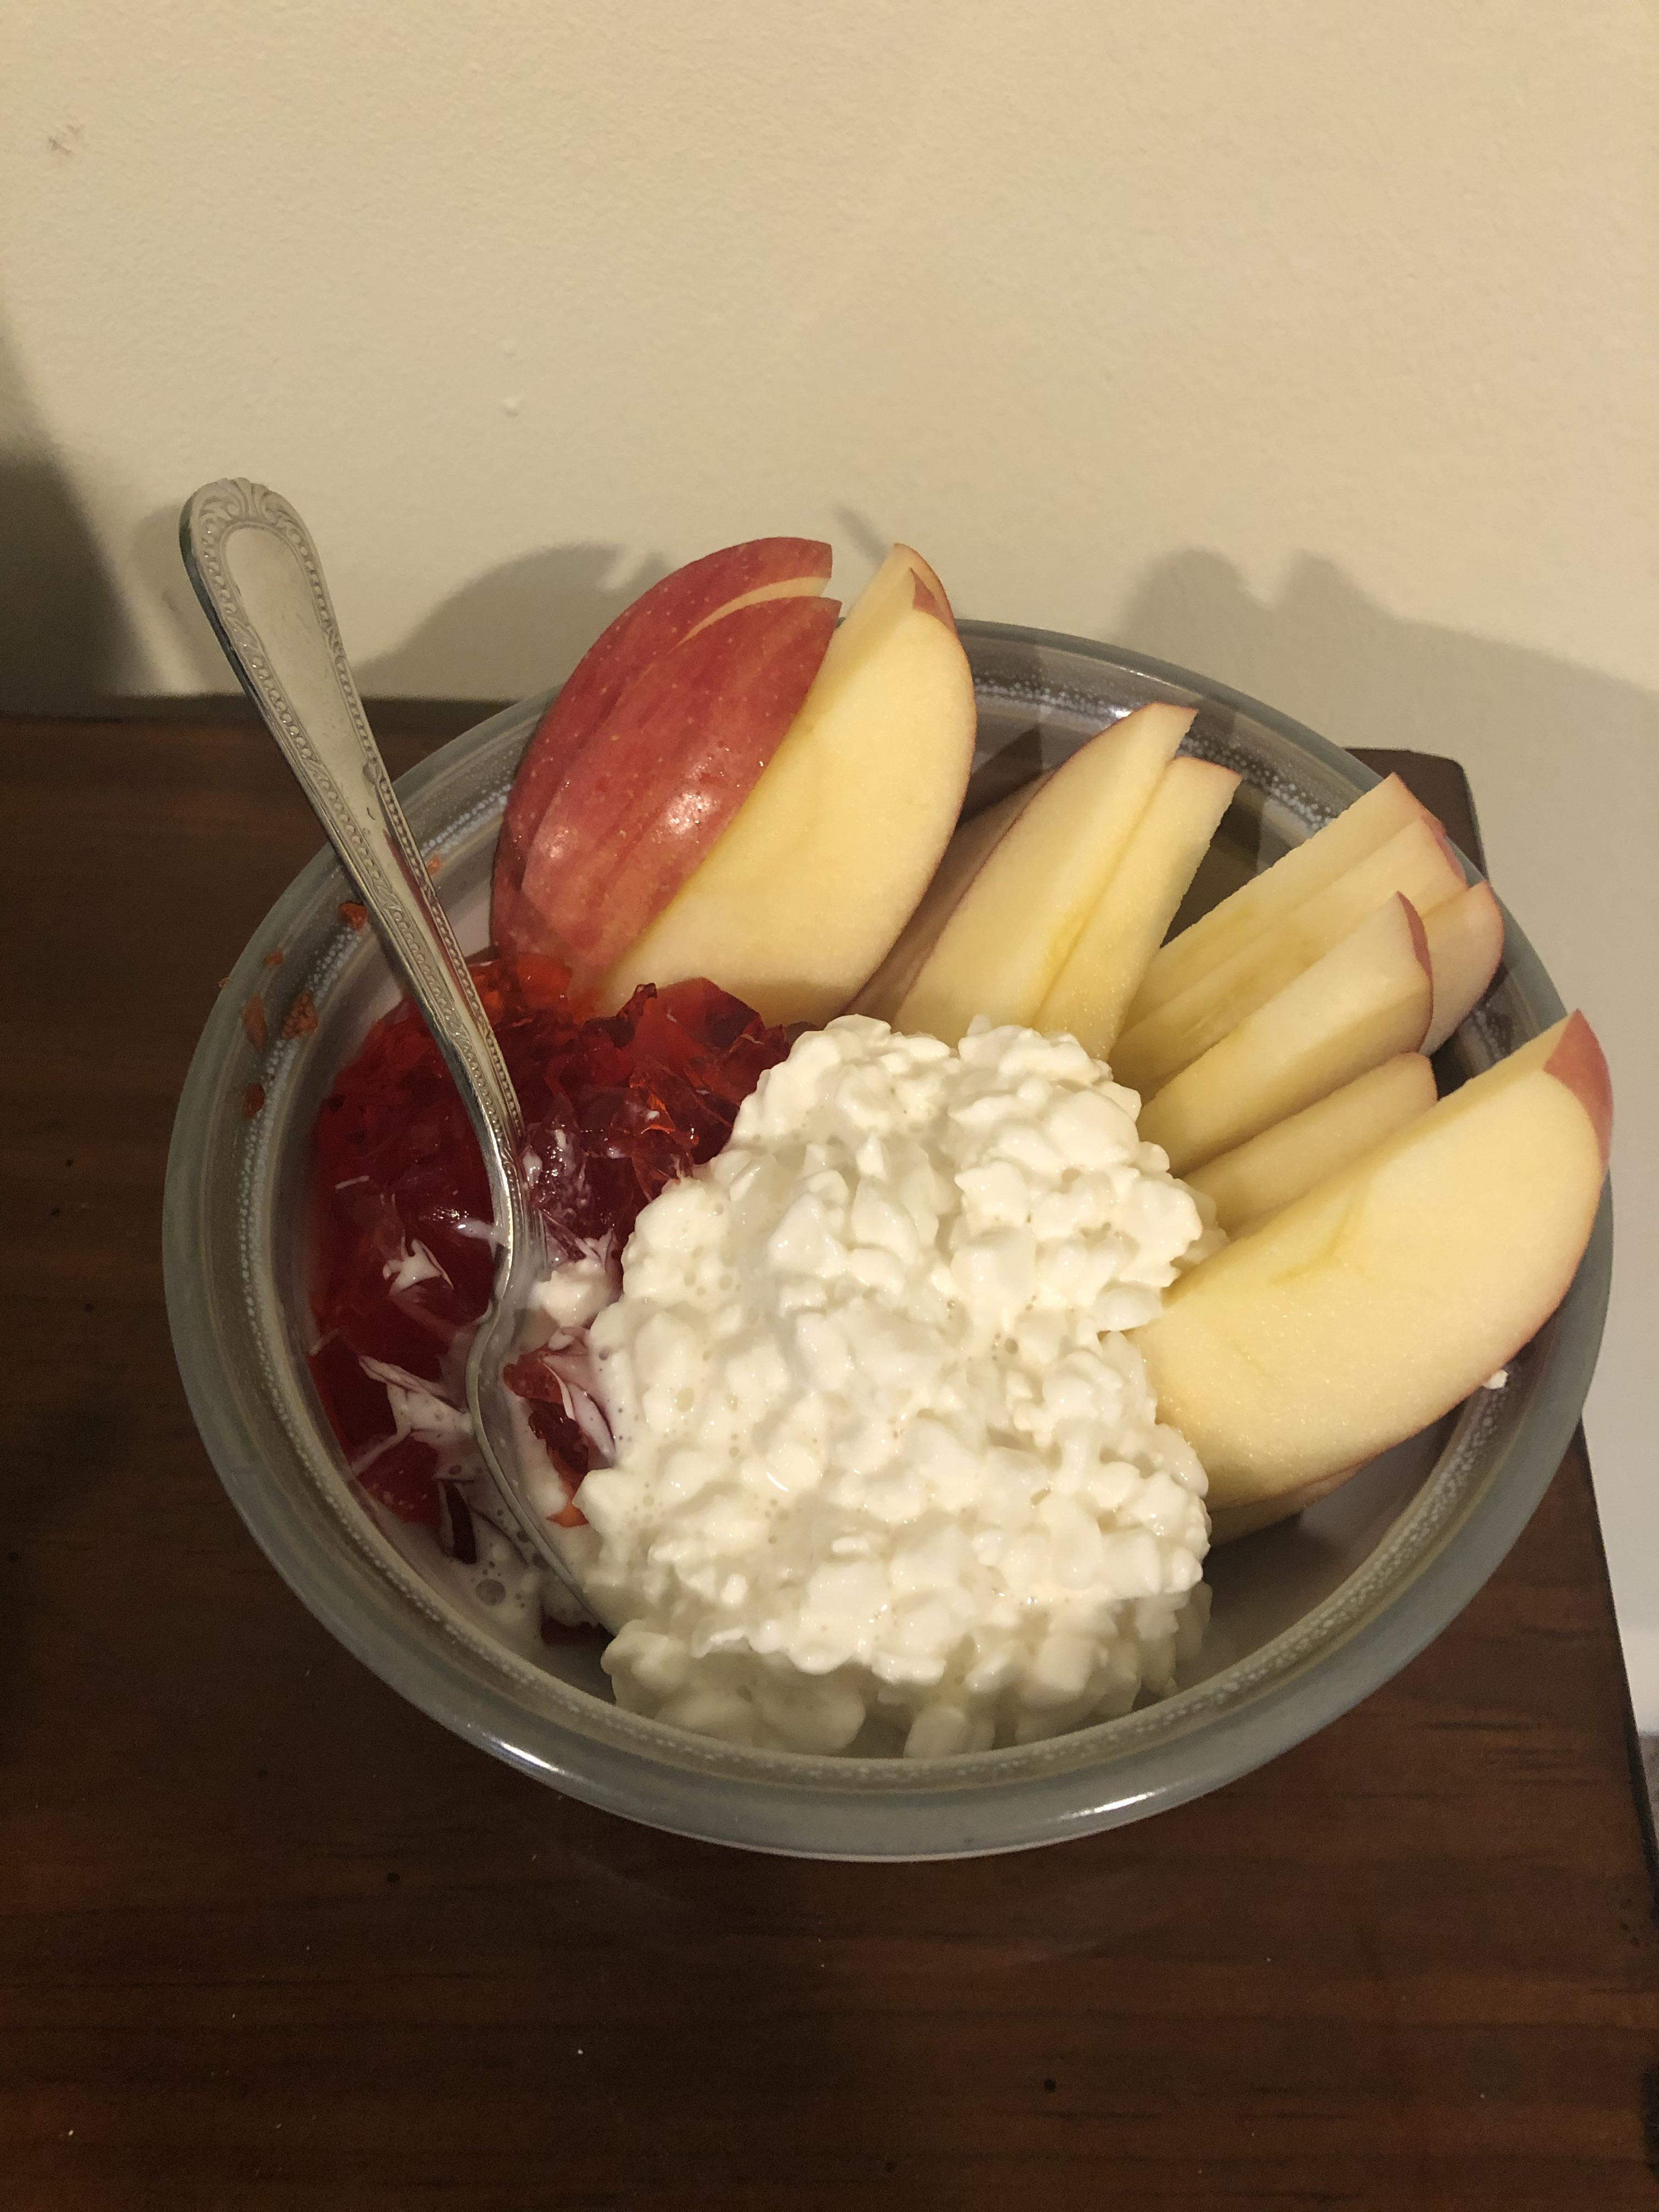 Large Fuji Apple Calories : large, apple, calories, Track, Snack, Calories;, Large, Apple,, Cottage, Cheese,, Jello, Pictured, Laughing, Cheese, Wedge, Slices, Earlier!), 1200isplenty